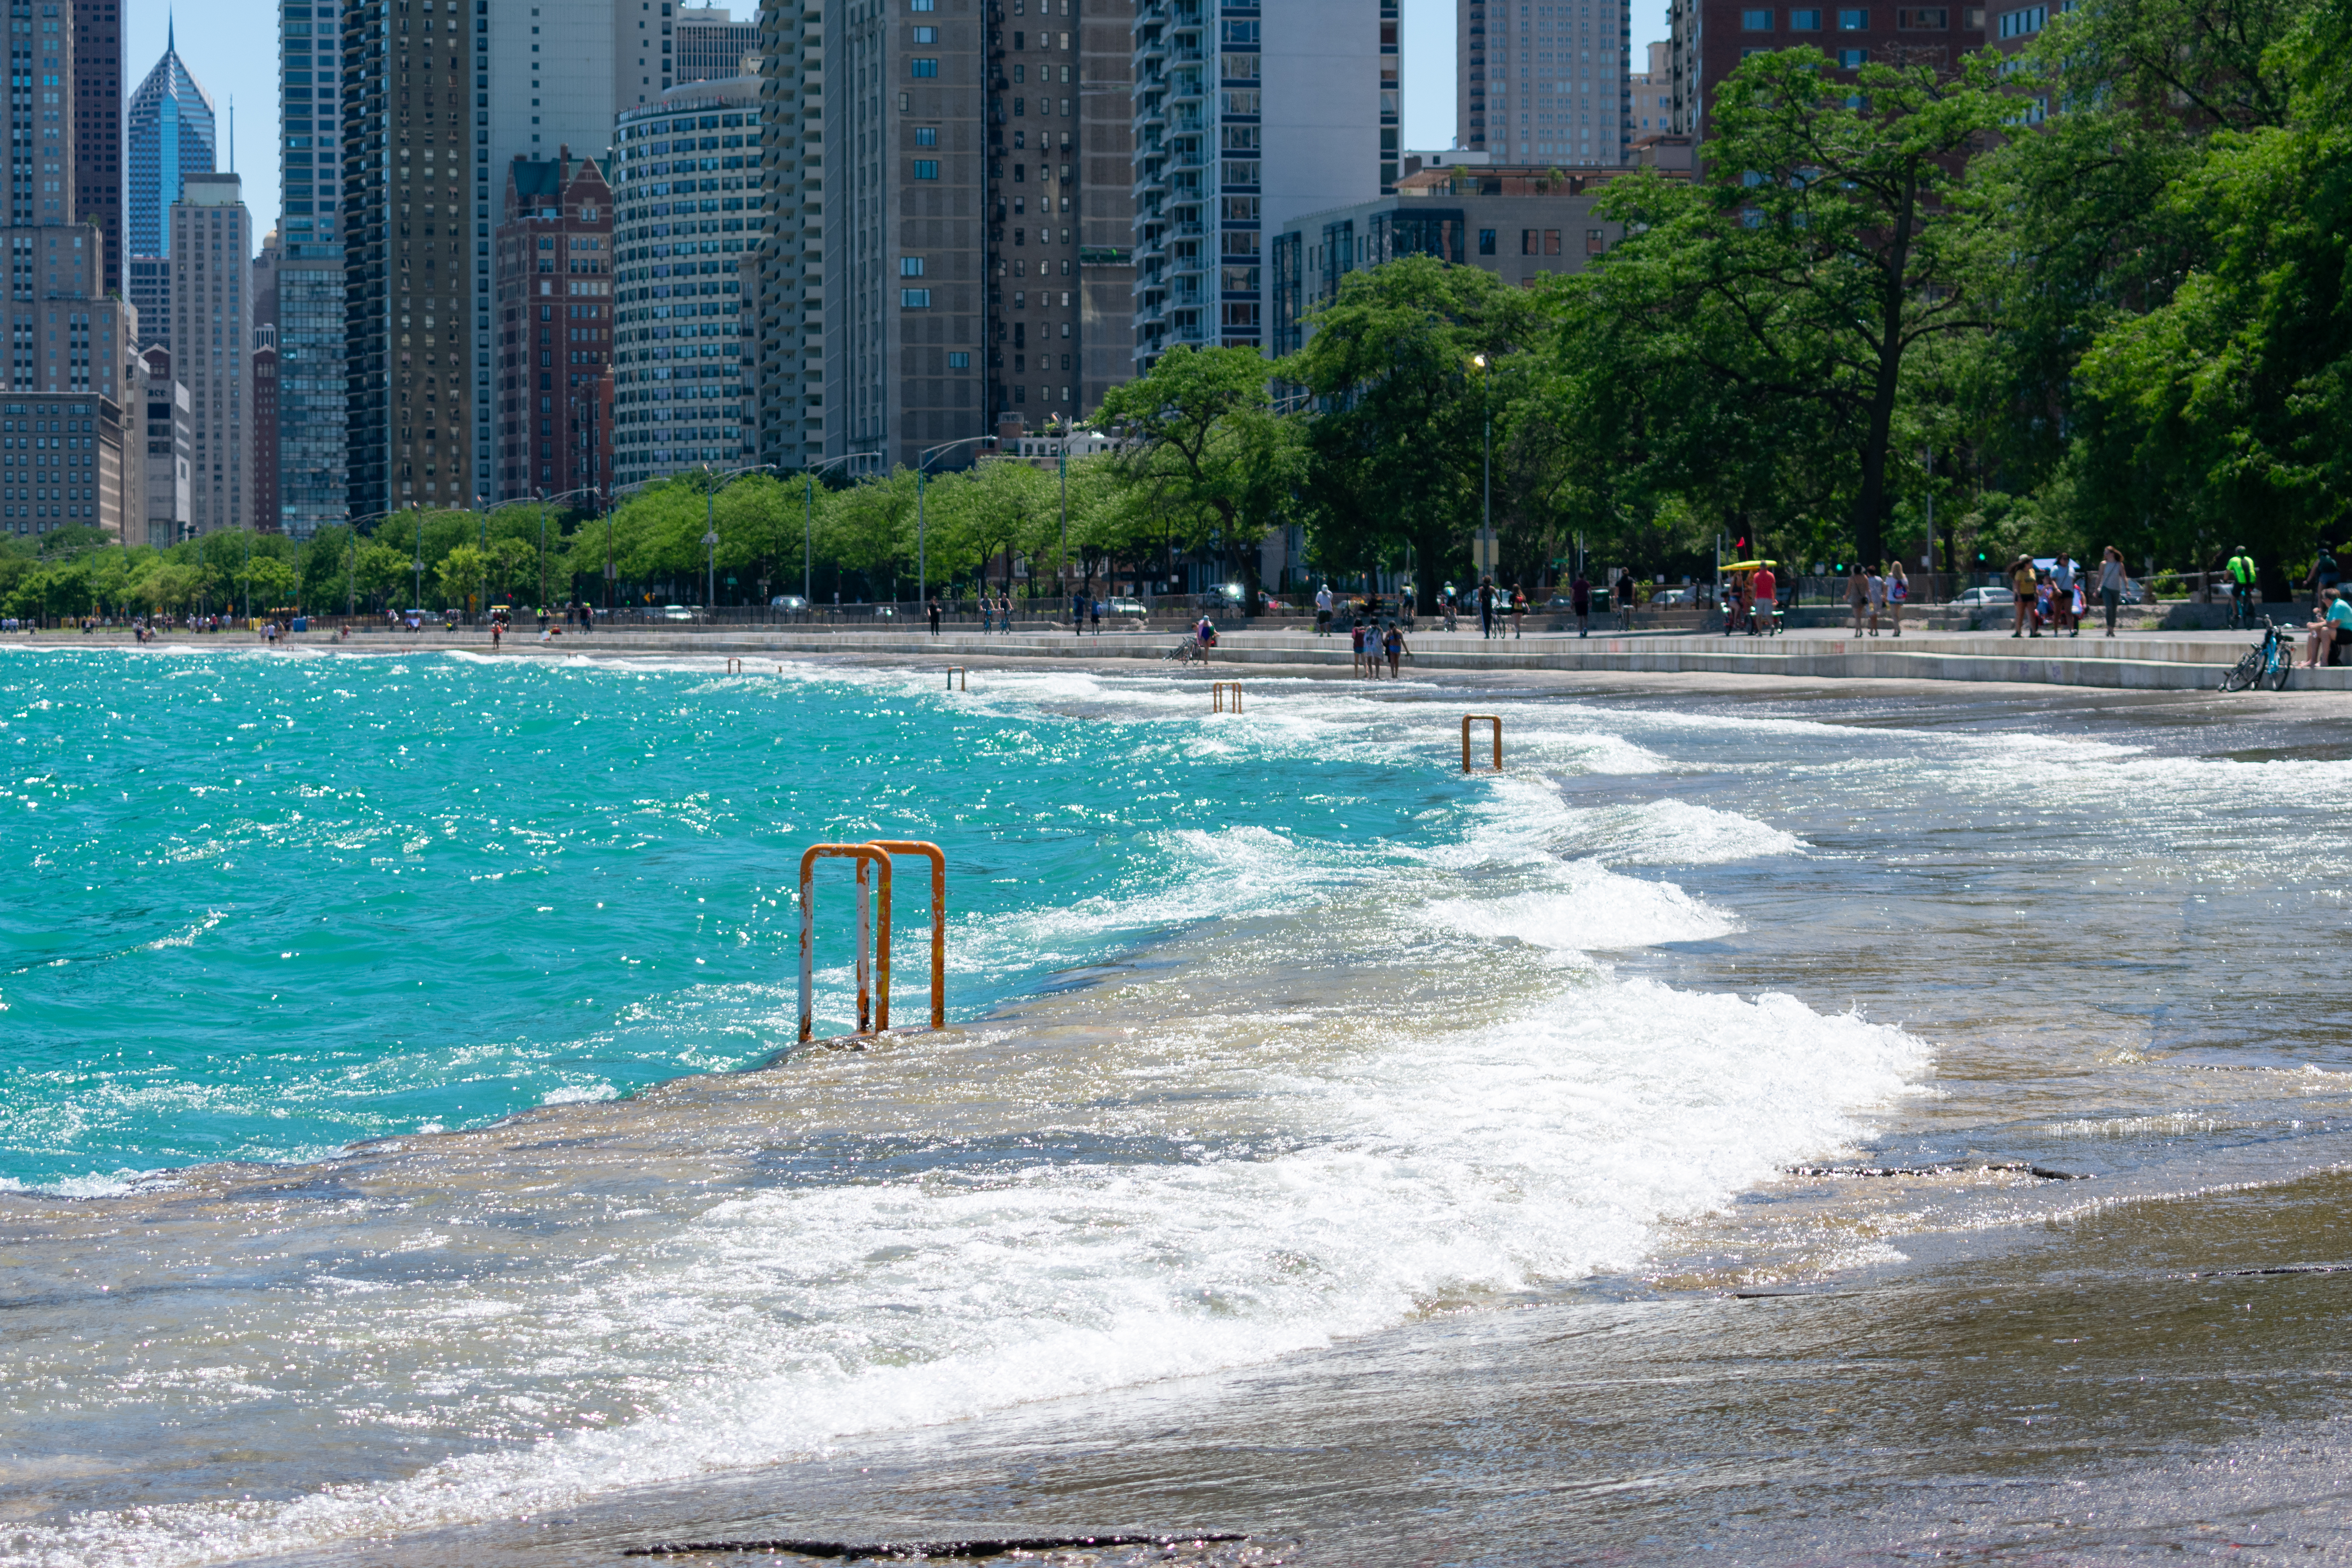 Waves crashing onto a path next to a multilane road and a row of tall buildings.